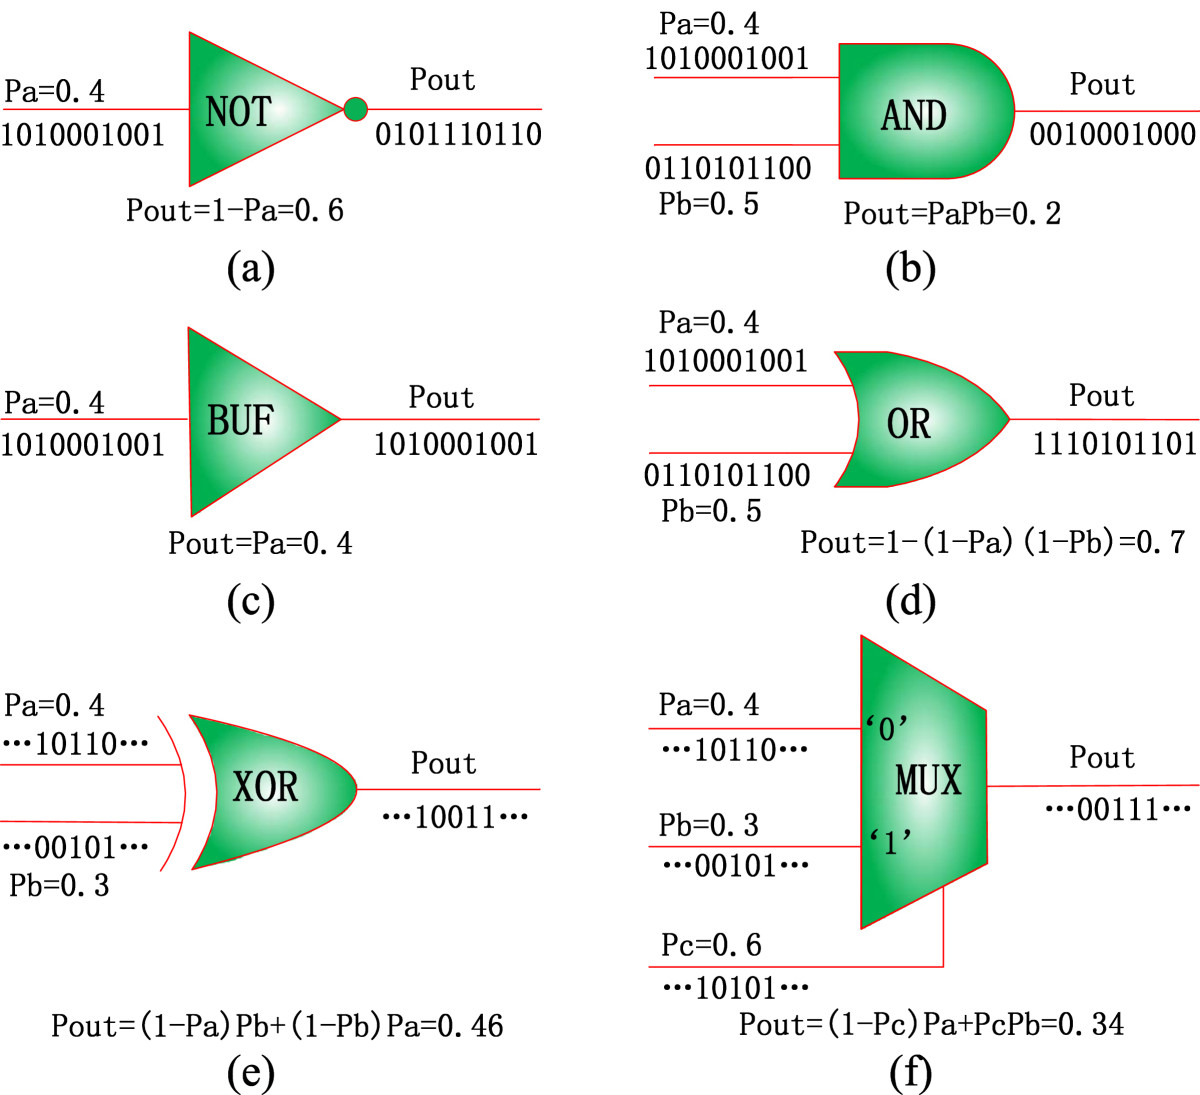 https://static-content.springer.com/image/art%3A10.1186%2F1752-0509-6-113/MediaObjects/12918_2012_Article_1016_Fig1_HTML.jpg